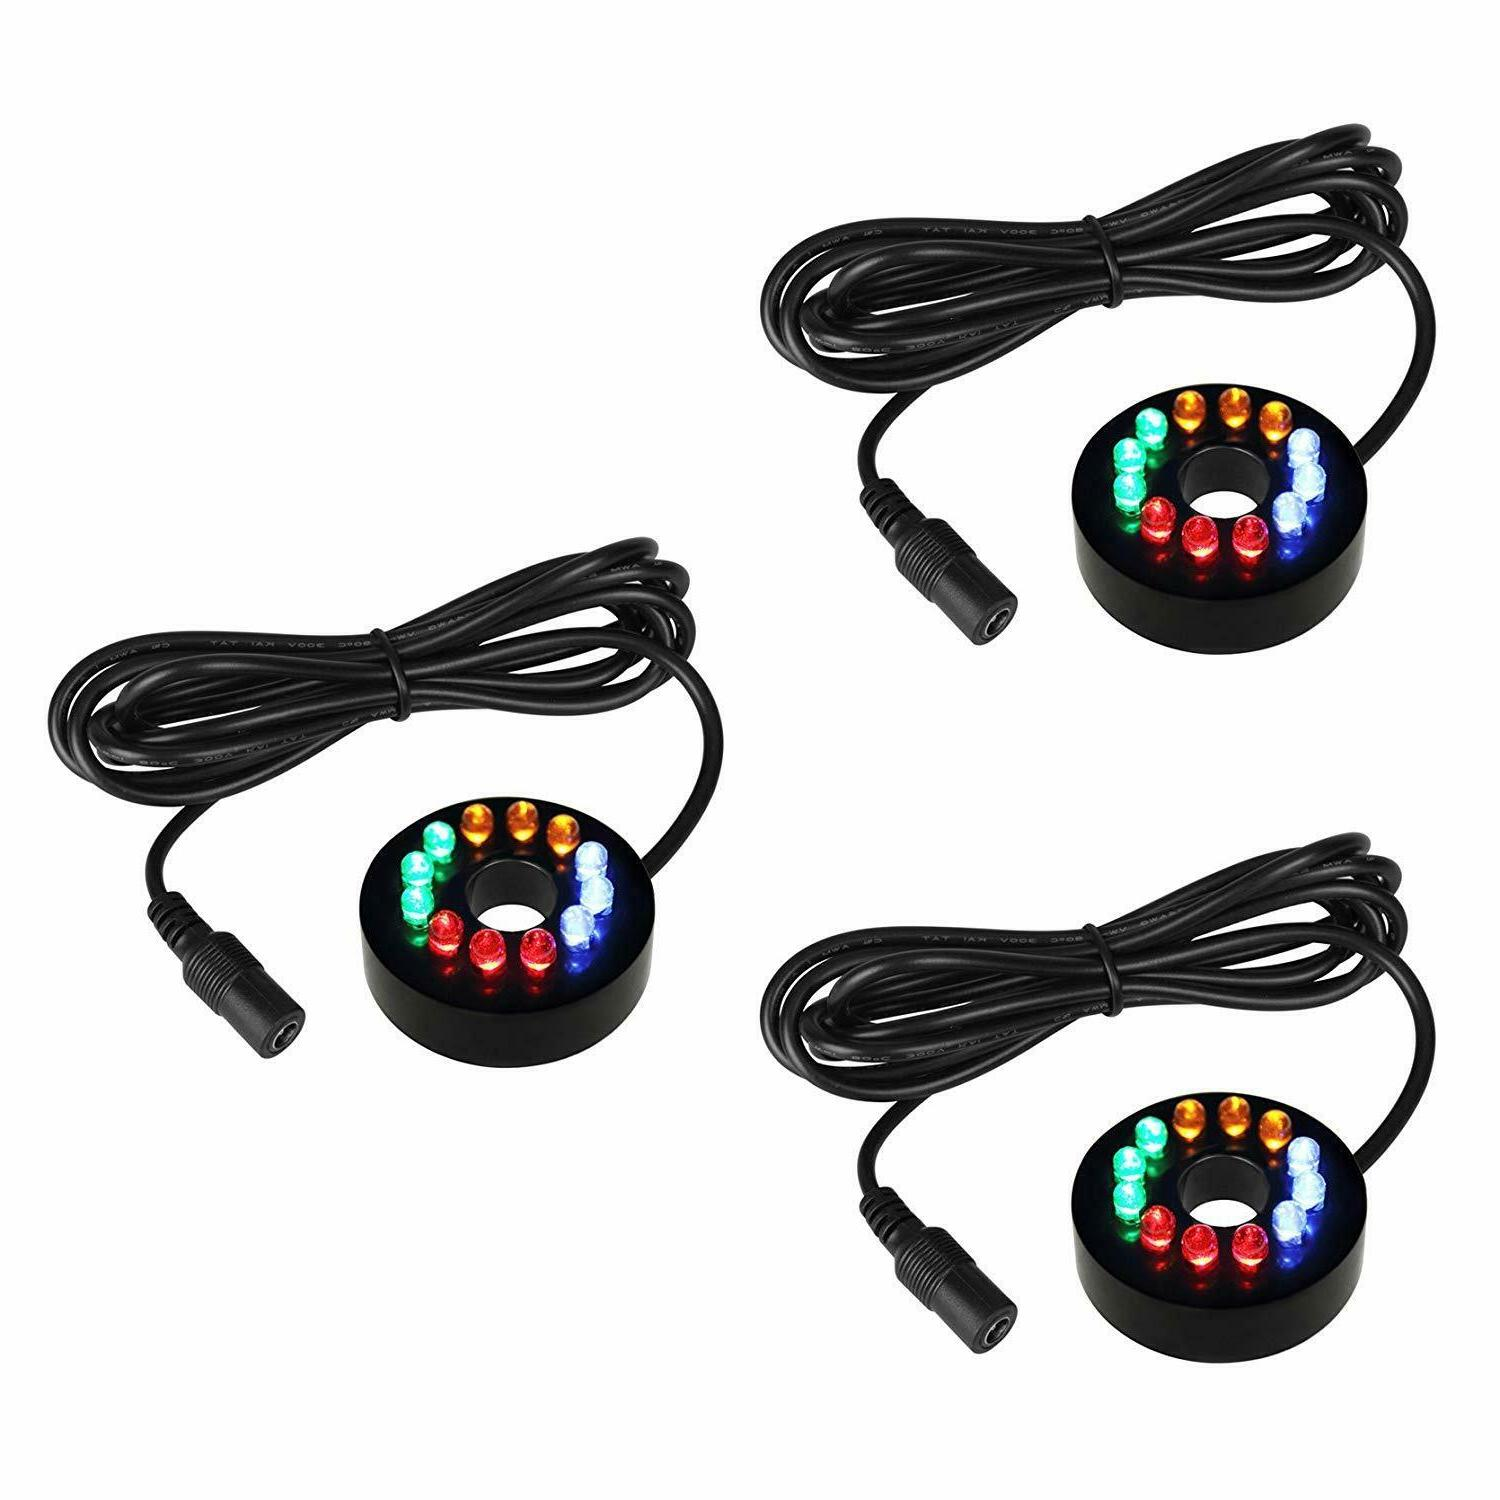 3 Pcs Lights Submersible